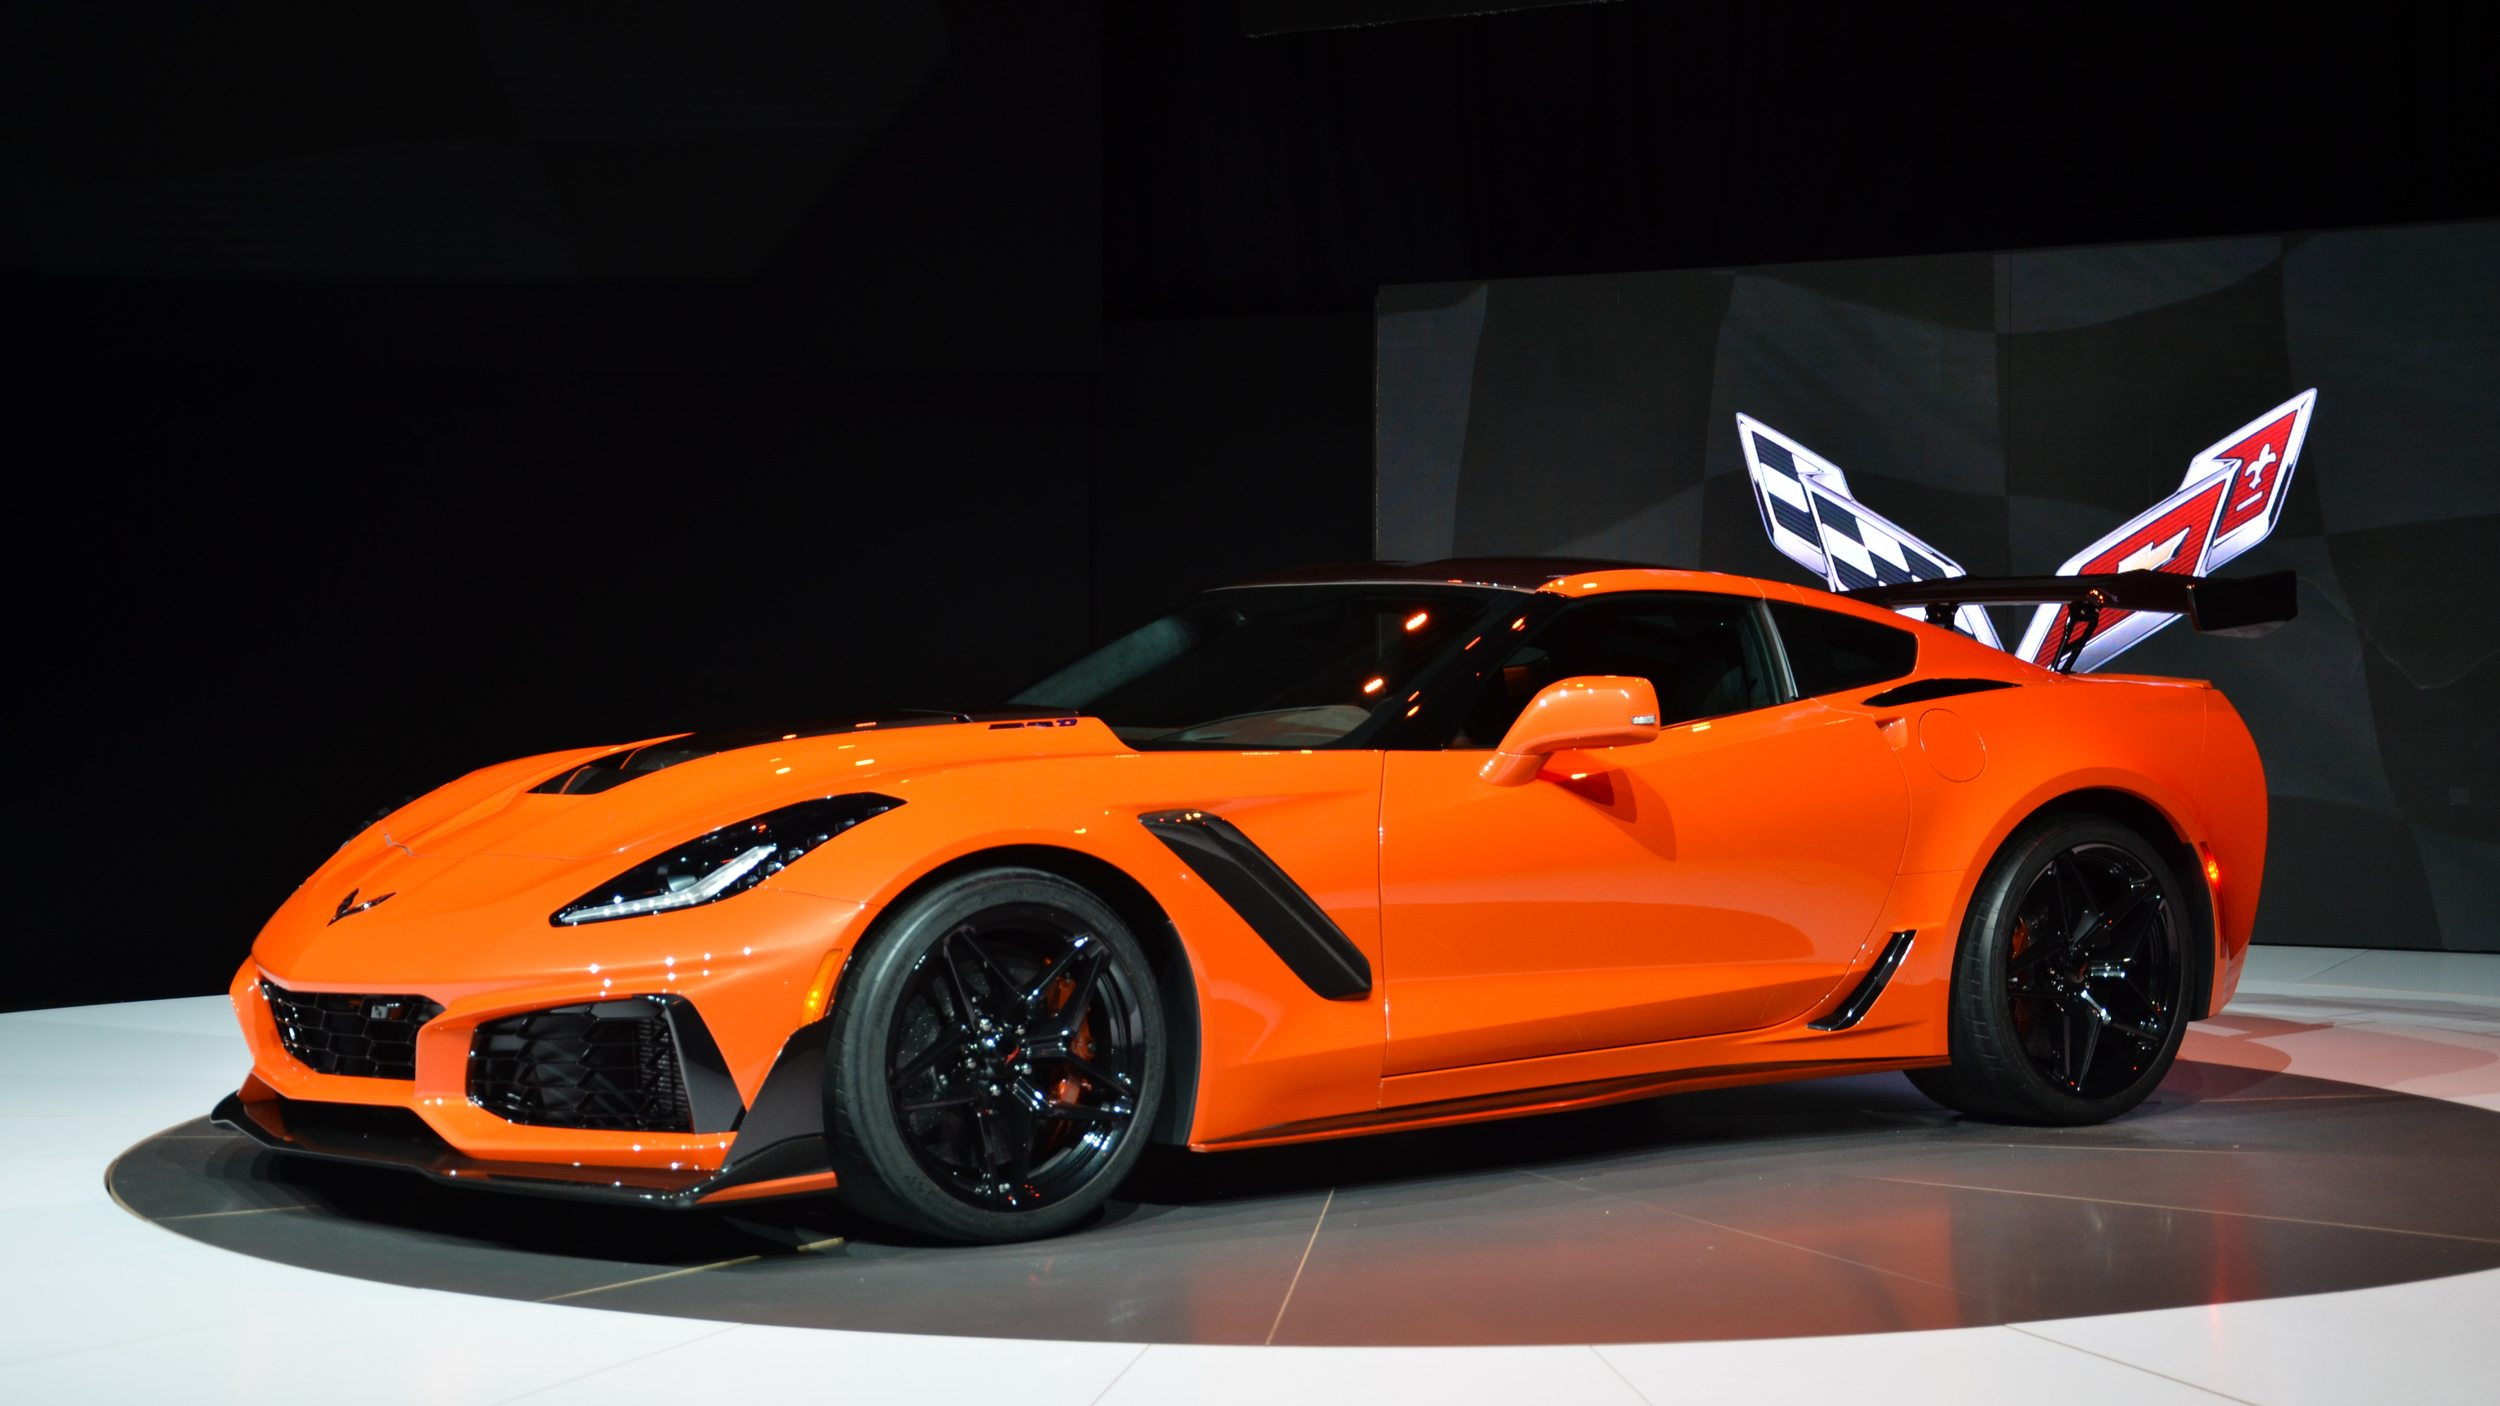 2019 Chevrolet Corvette Zr1s Have Been Shipped To Dealers